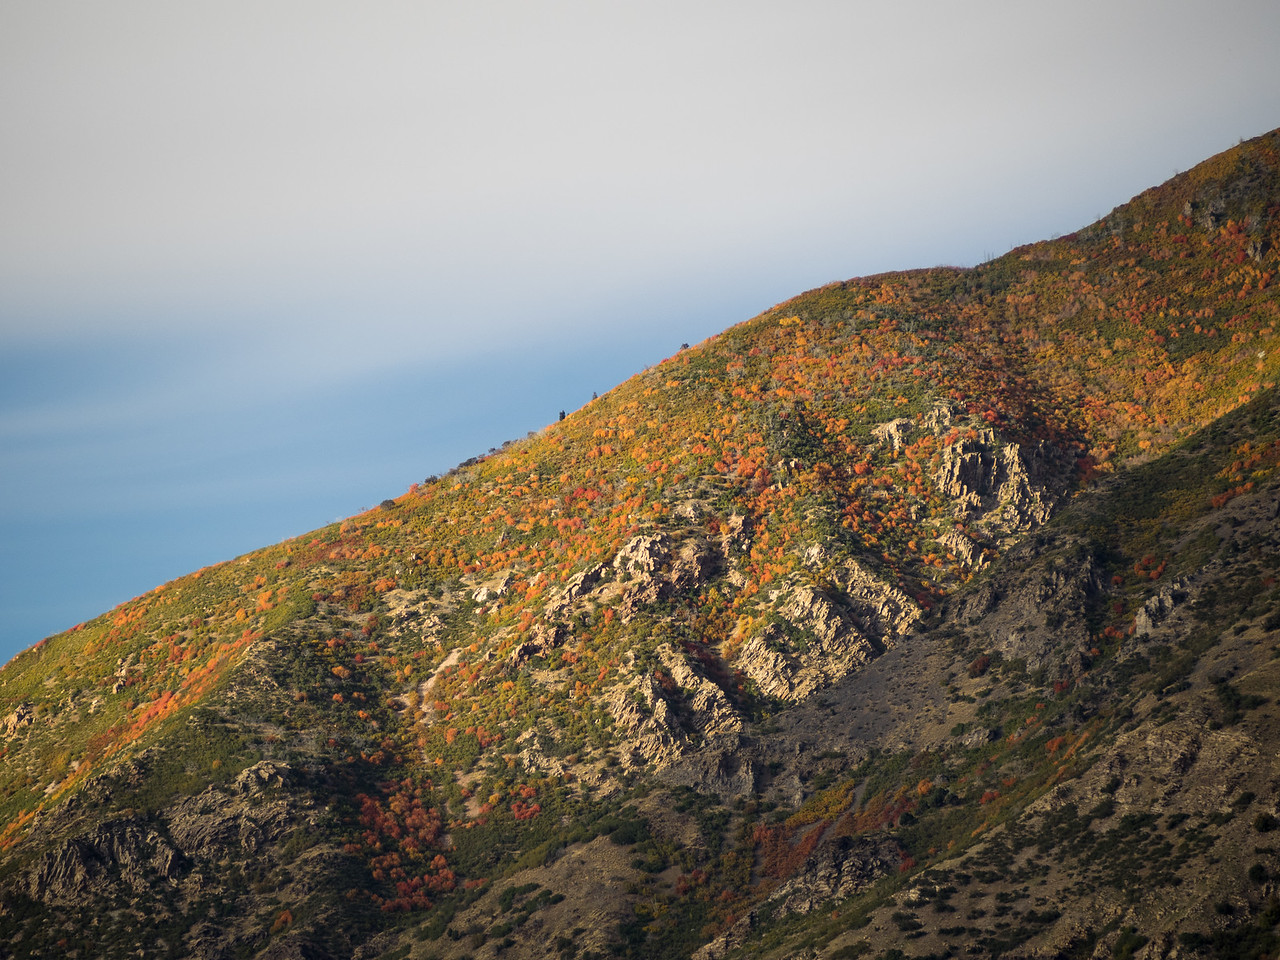 Light on a Mountainside in Autumn